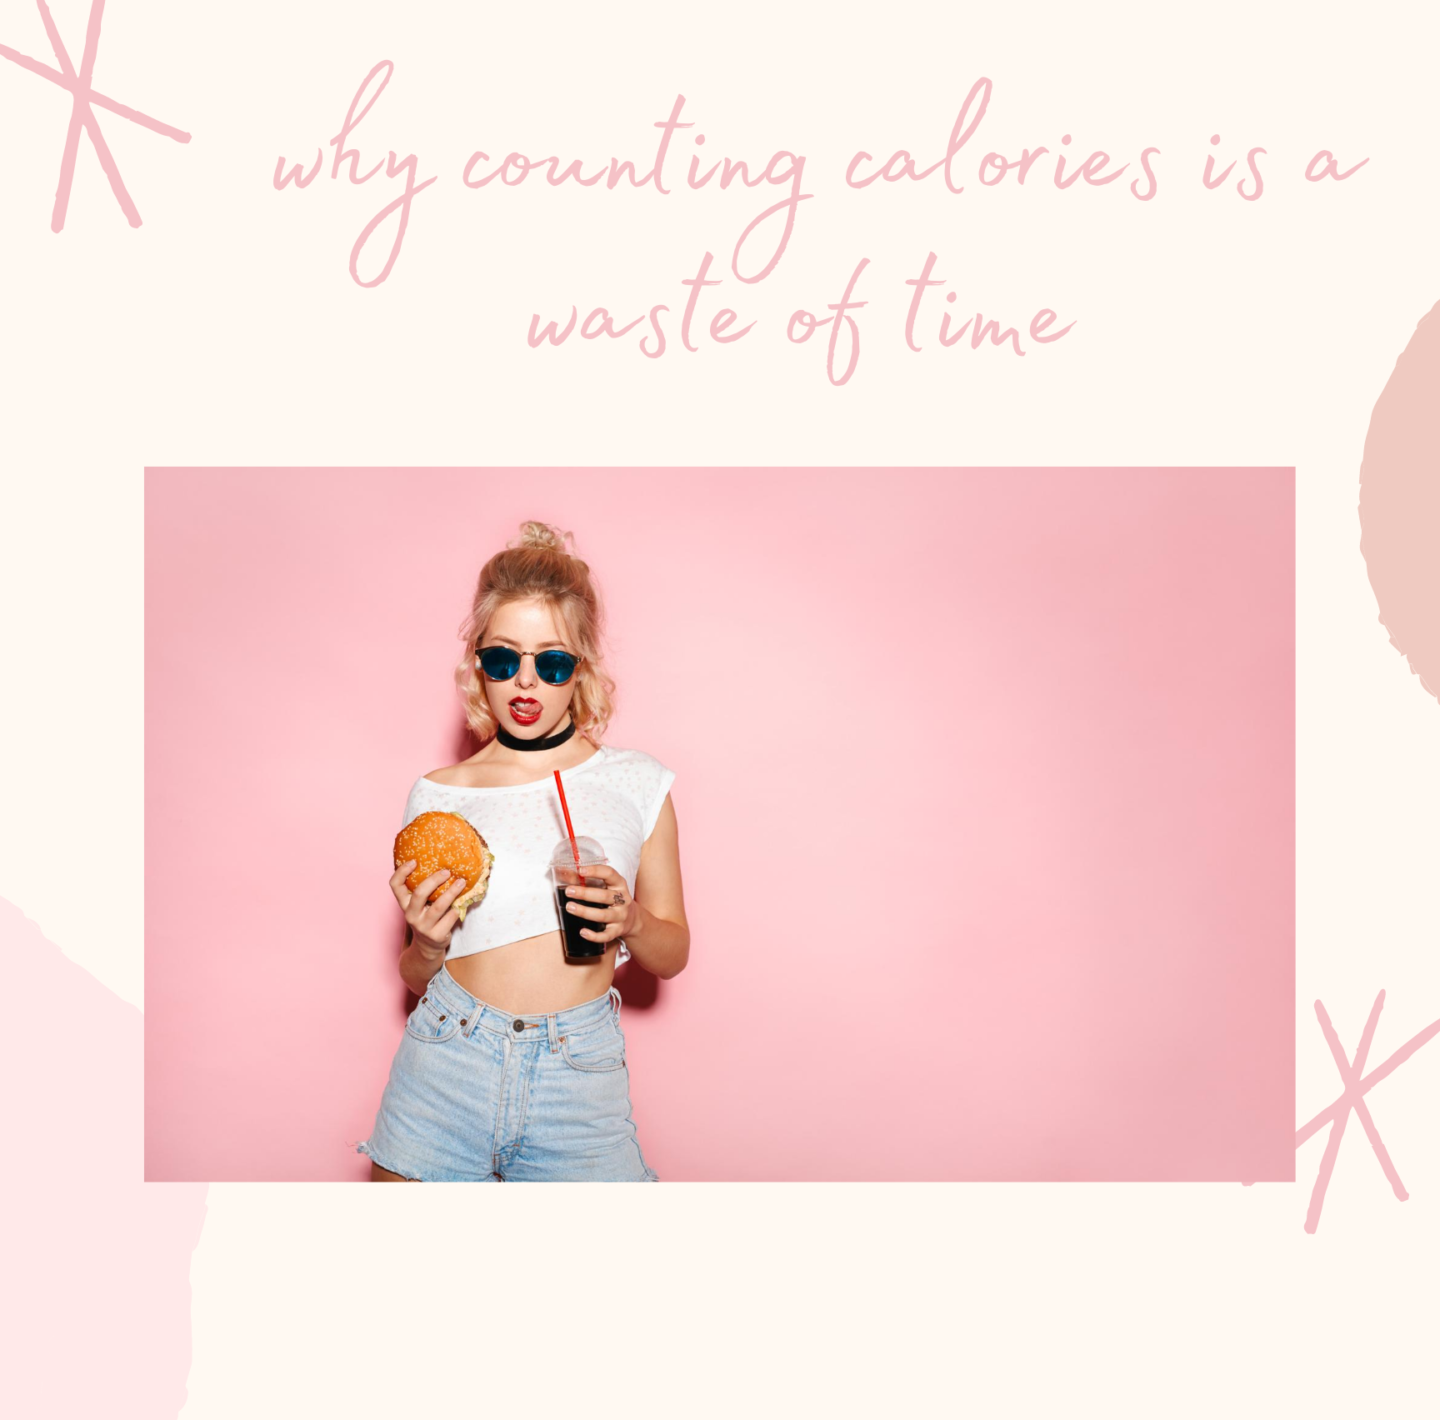 counting calories is a waste of time